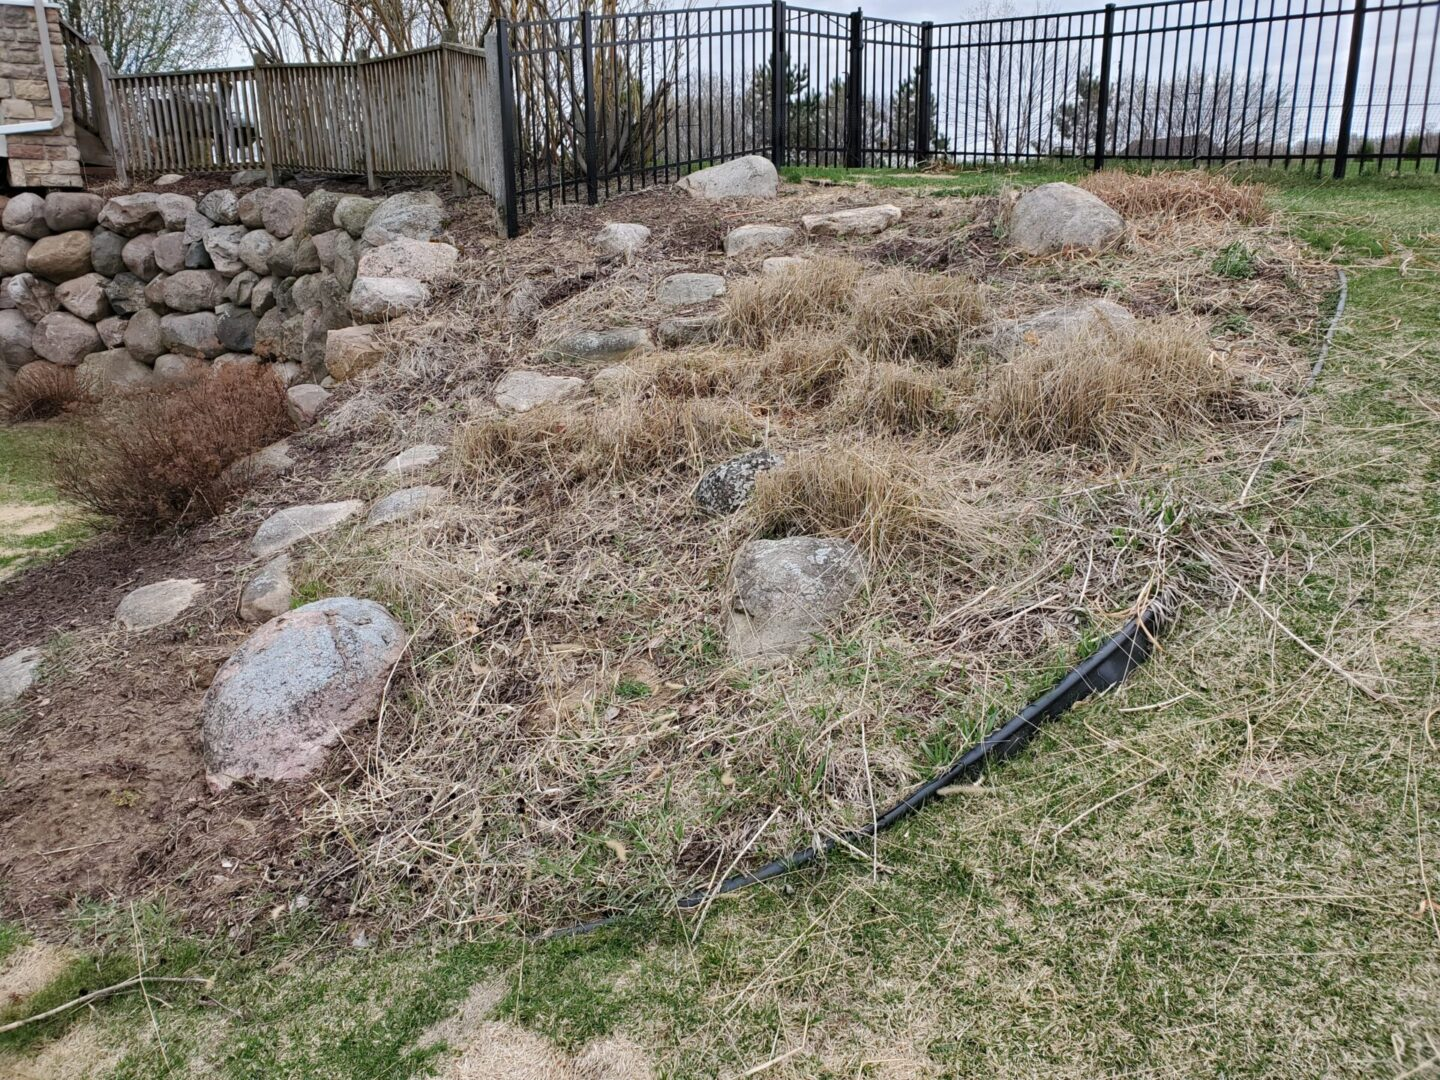 Plastic edging pulls out and grass grows over it